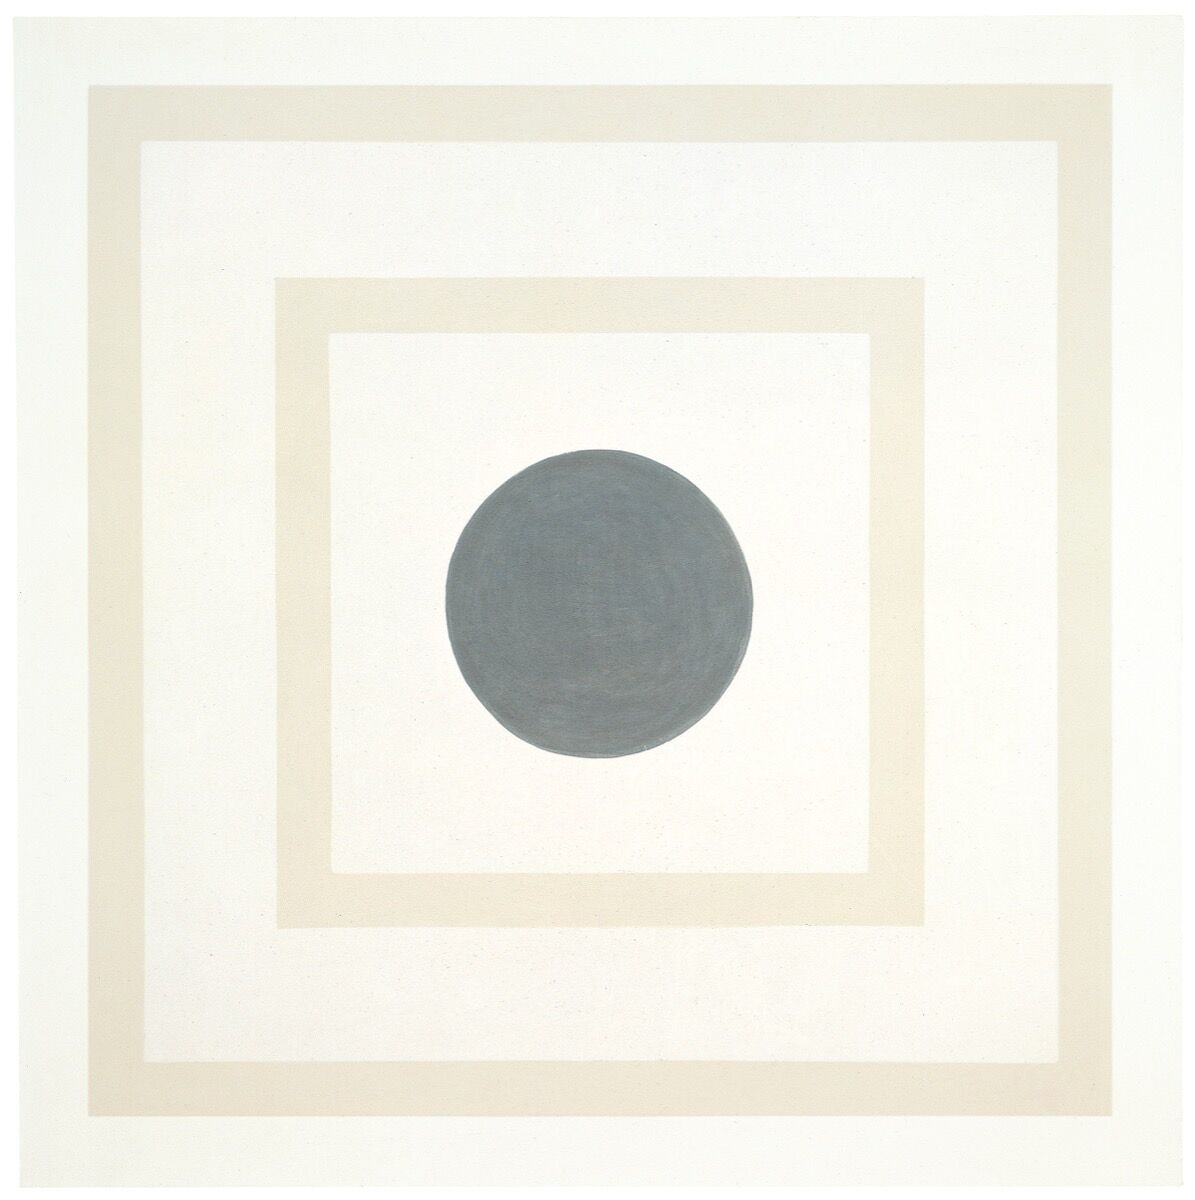 Agnes Martin, Untitled, c. 1960. © 2018 Estate of Agnes Martin / Artists Rights Society (ARS), New York. Courtesy of Pace.